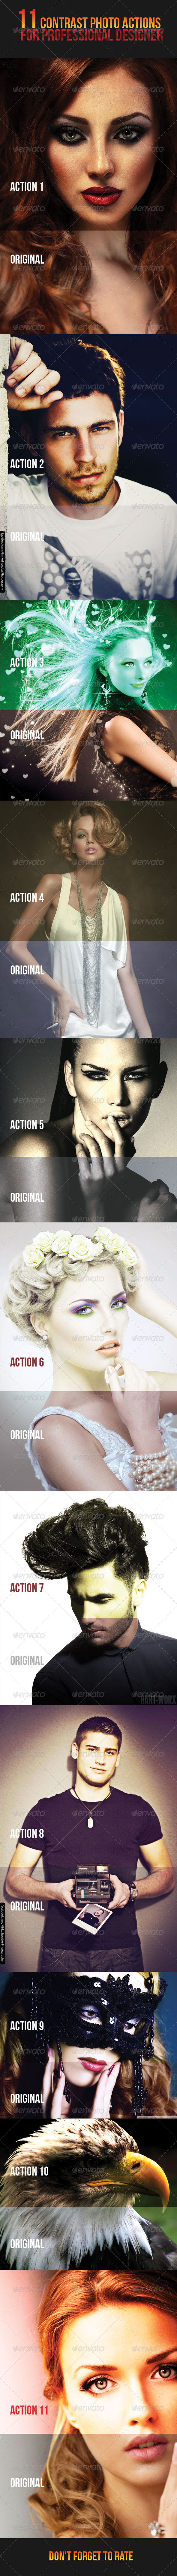 GraphicRiver 11 Contrast Photo Actions 7752192